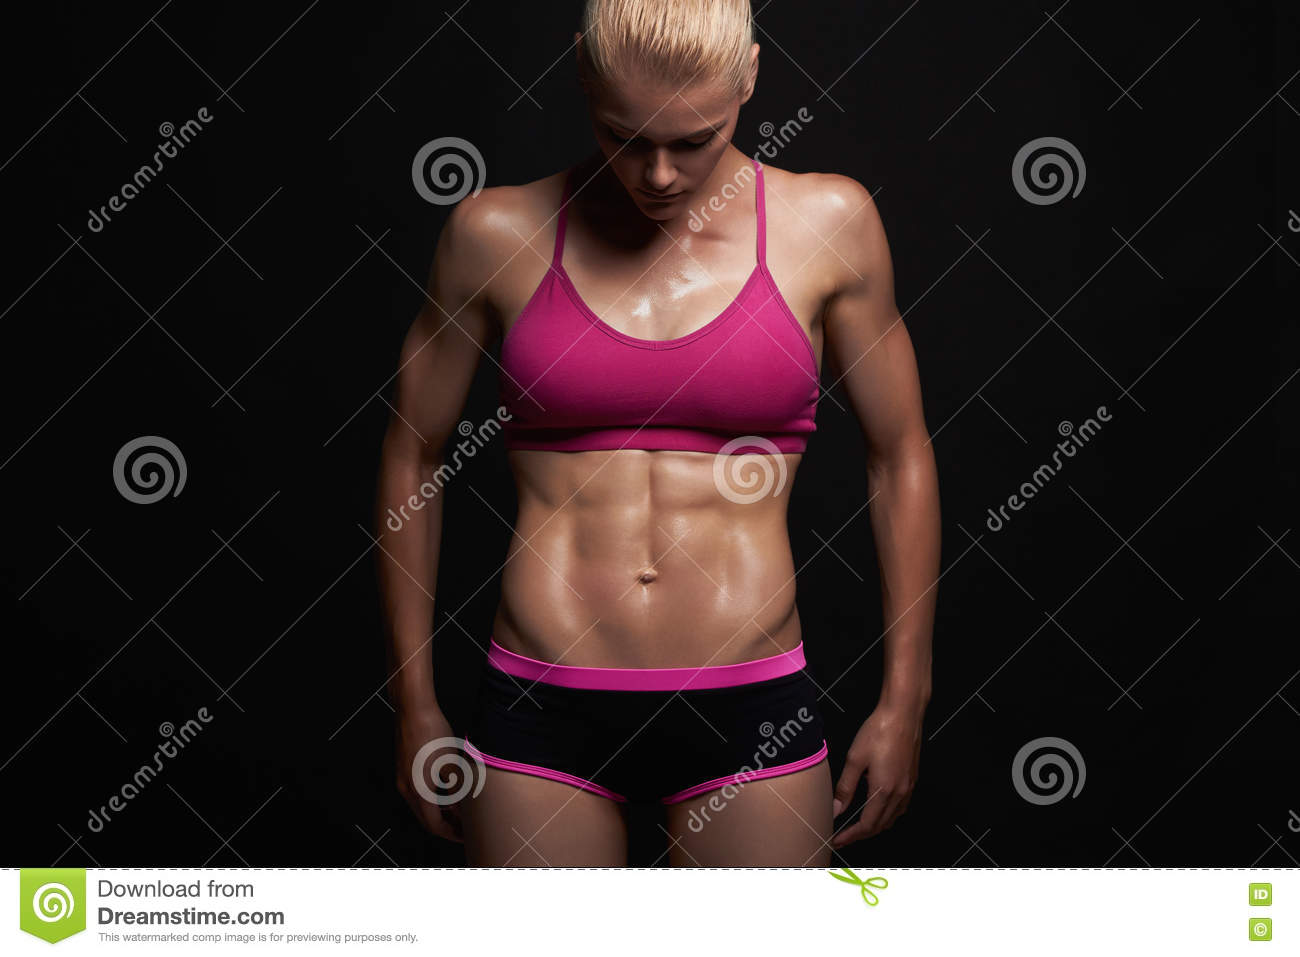 Stock Photography Healthy Strong Boy Image17855842 together with 13 together with Werewolf furthermore Illustration Stock Illustration De Caractre De Carotte De Bande Dessine Image42141303 as well Celebrity Voices You Might Have Missed In Avatar The Last Airbender And Legend Of Korra. on orange muscle cartoon